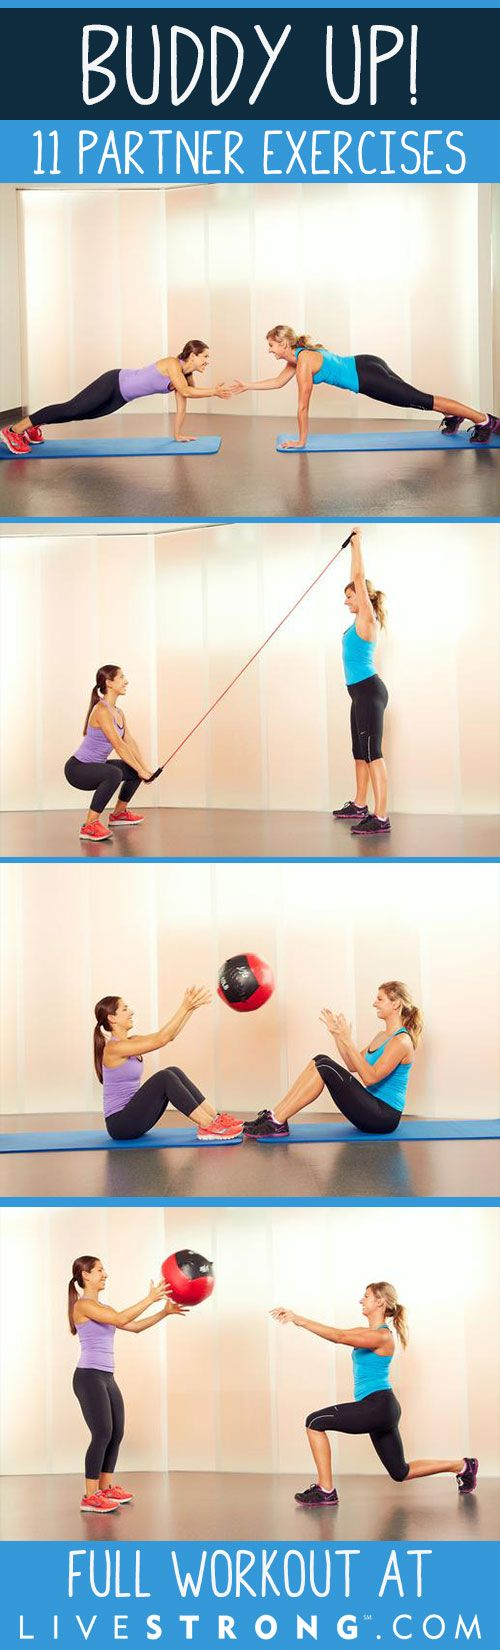 Buddy Up With These 11 Exercises You Can Do With a Partner!